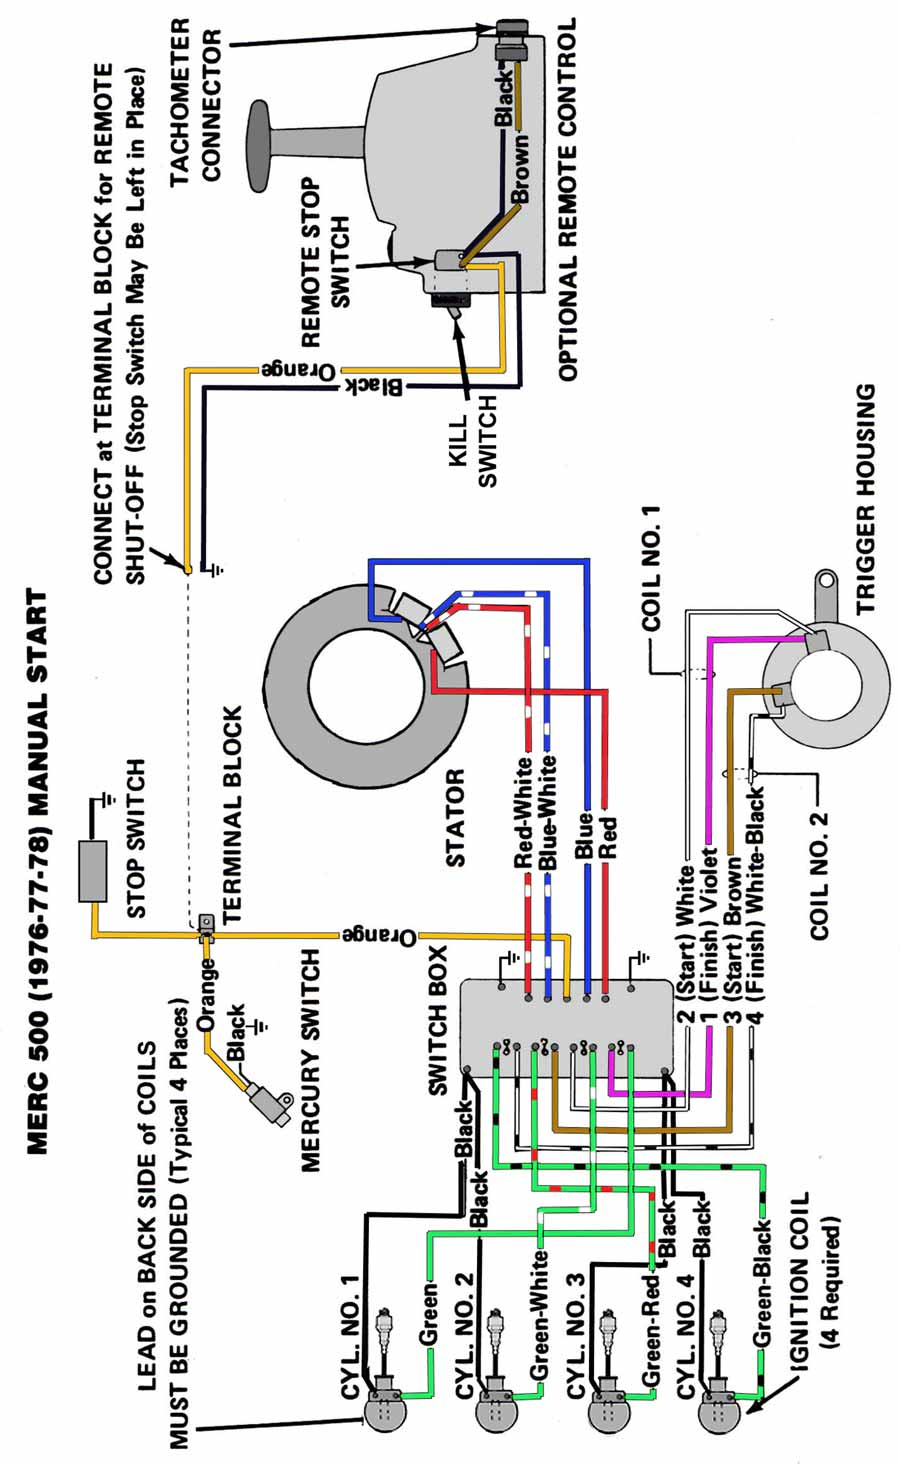 06 Ski Doo Rev Wire Diagram | Wiring Liry Ski Doo Rer Wiring Diagram on simplicity wiring-diagram, audi wiring-diagram, murray wiring-diagram, 1980 moto-ski wiring-diagram, big dog wiring-diagram, kawasaki wiring-diagram, 2007 outlander wiring-diagram, suzuki wiring-diagram, skandic wiring-diagram, mercedes-benz wiring-diagram,